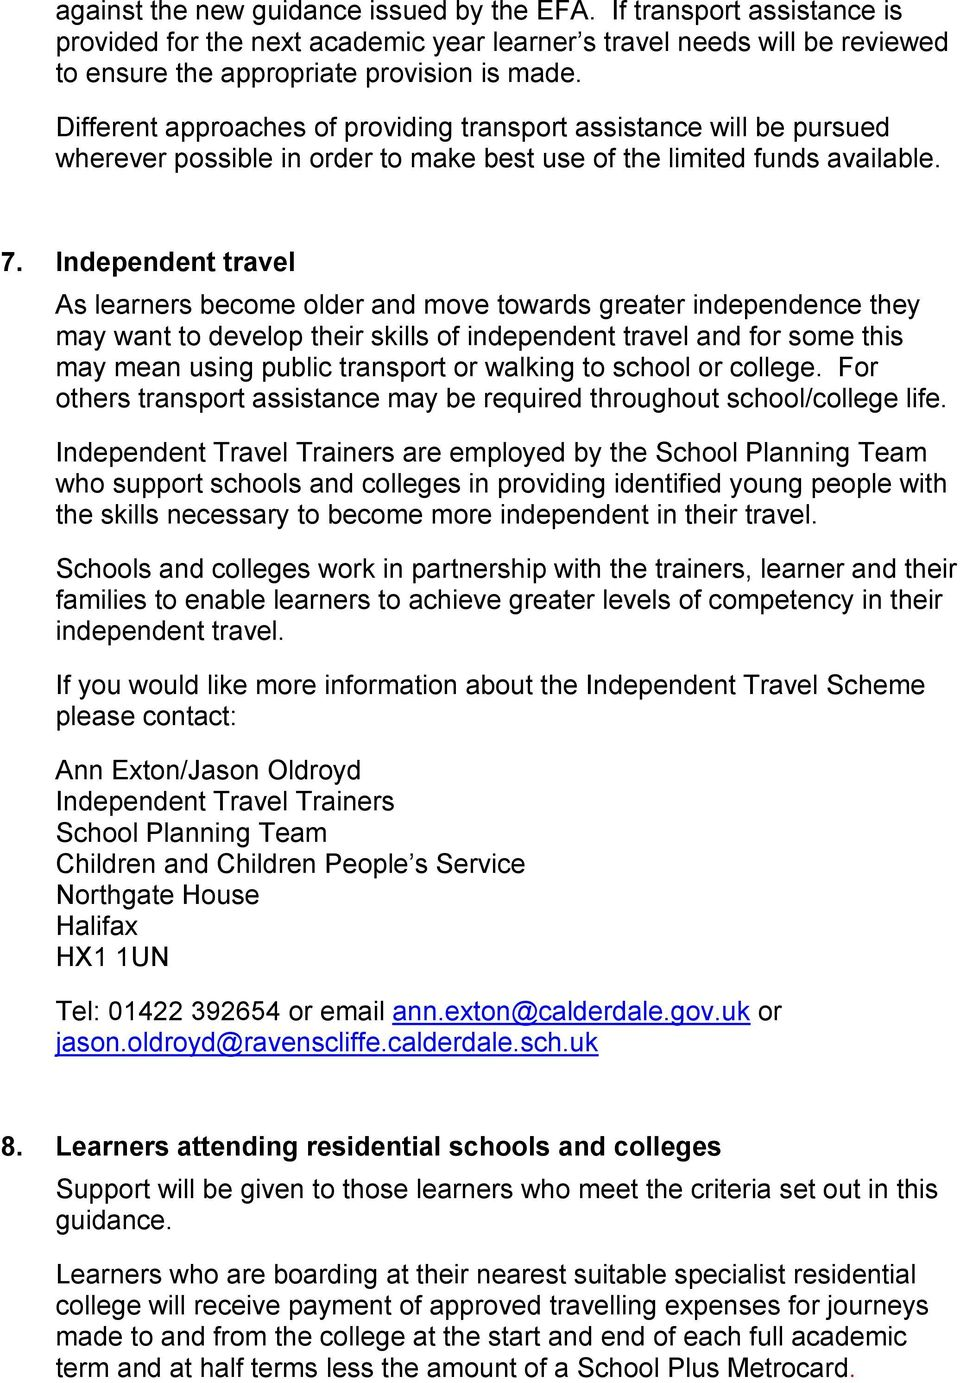 Independent travel As learners become older and move towards greater independence they may want to develop their skills of independent travel and for some this may mean using public transport or